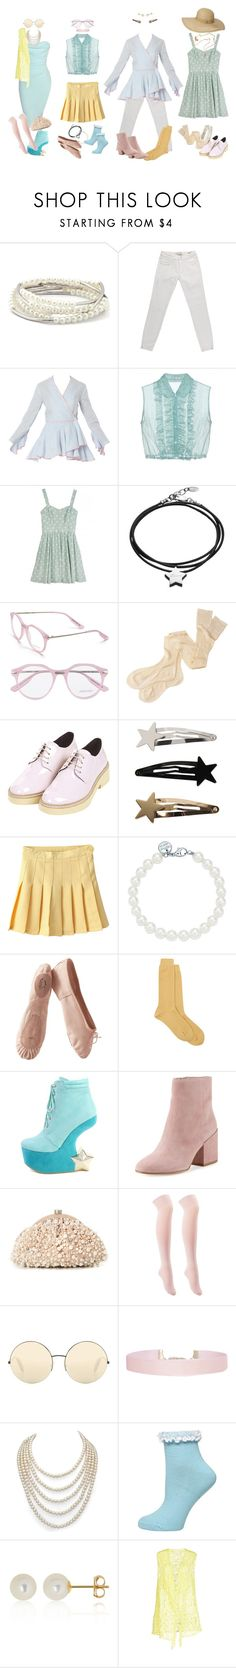 """Pearl"" by king-archie ❤ liked on Polyvore featuring Chrysalis, Henry & Belle, Gül Hürgel, Miu Miu, MINKPINK, Under the Rose, Jason Wu, Margaret Howell, Topshop and Tiffany & Co."